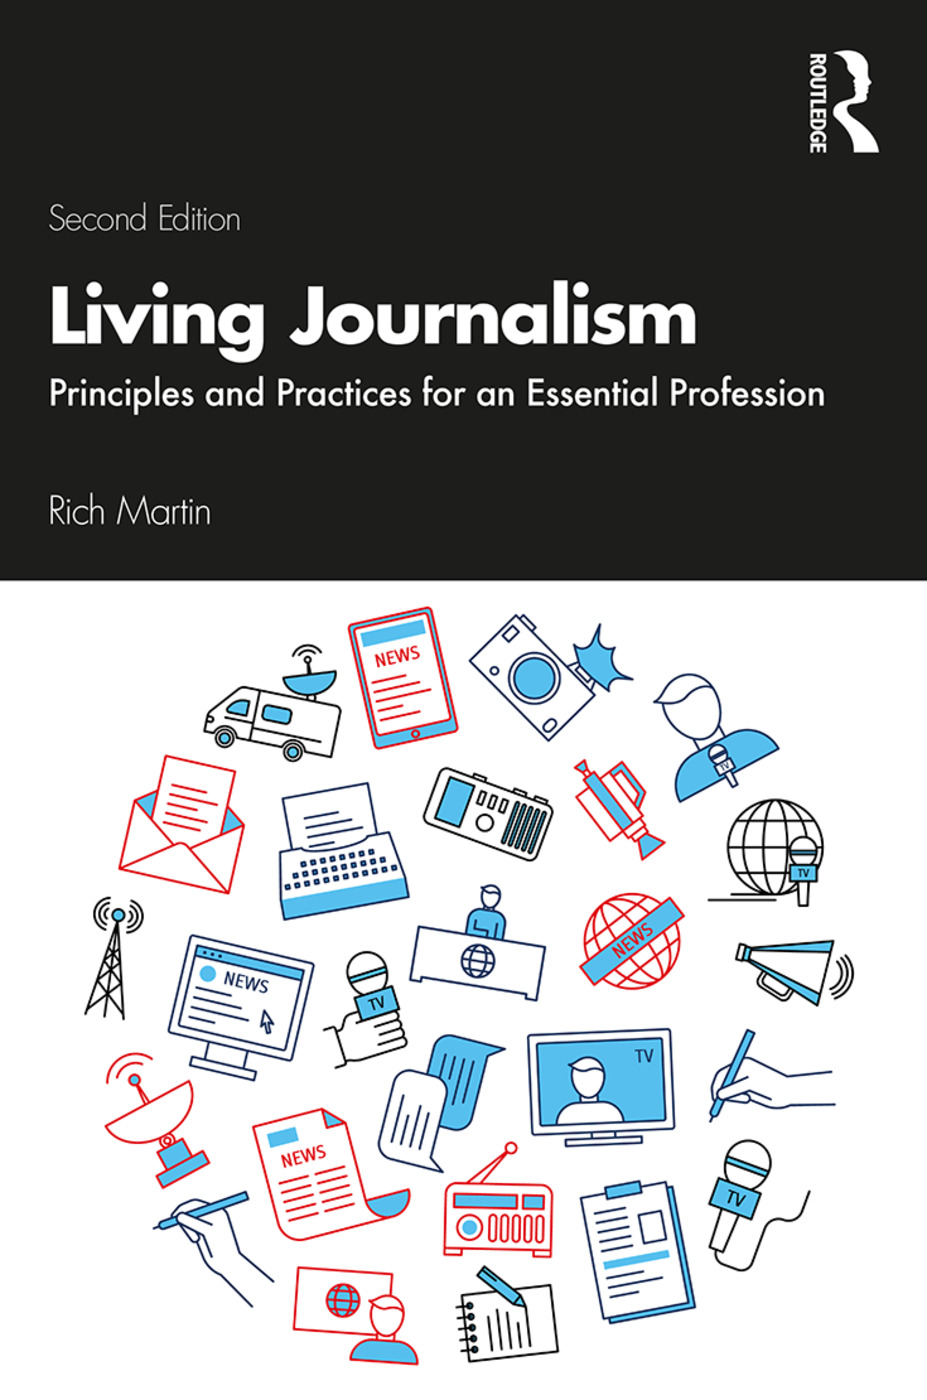 Living Journalism: Principles and Practices for an Essential Profession book cover